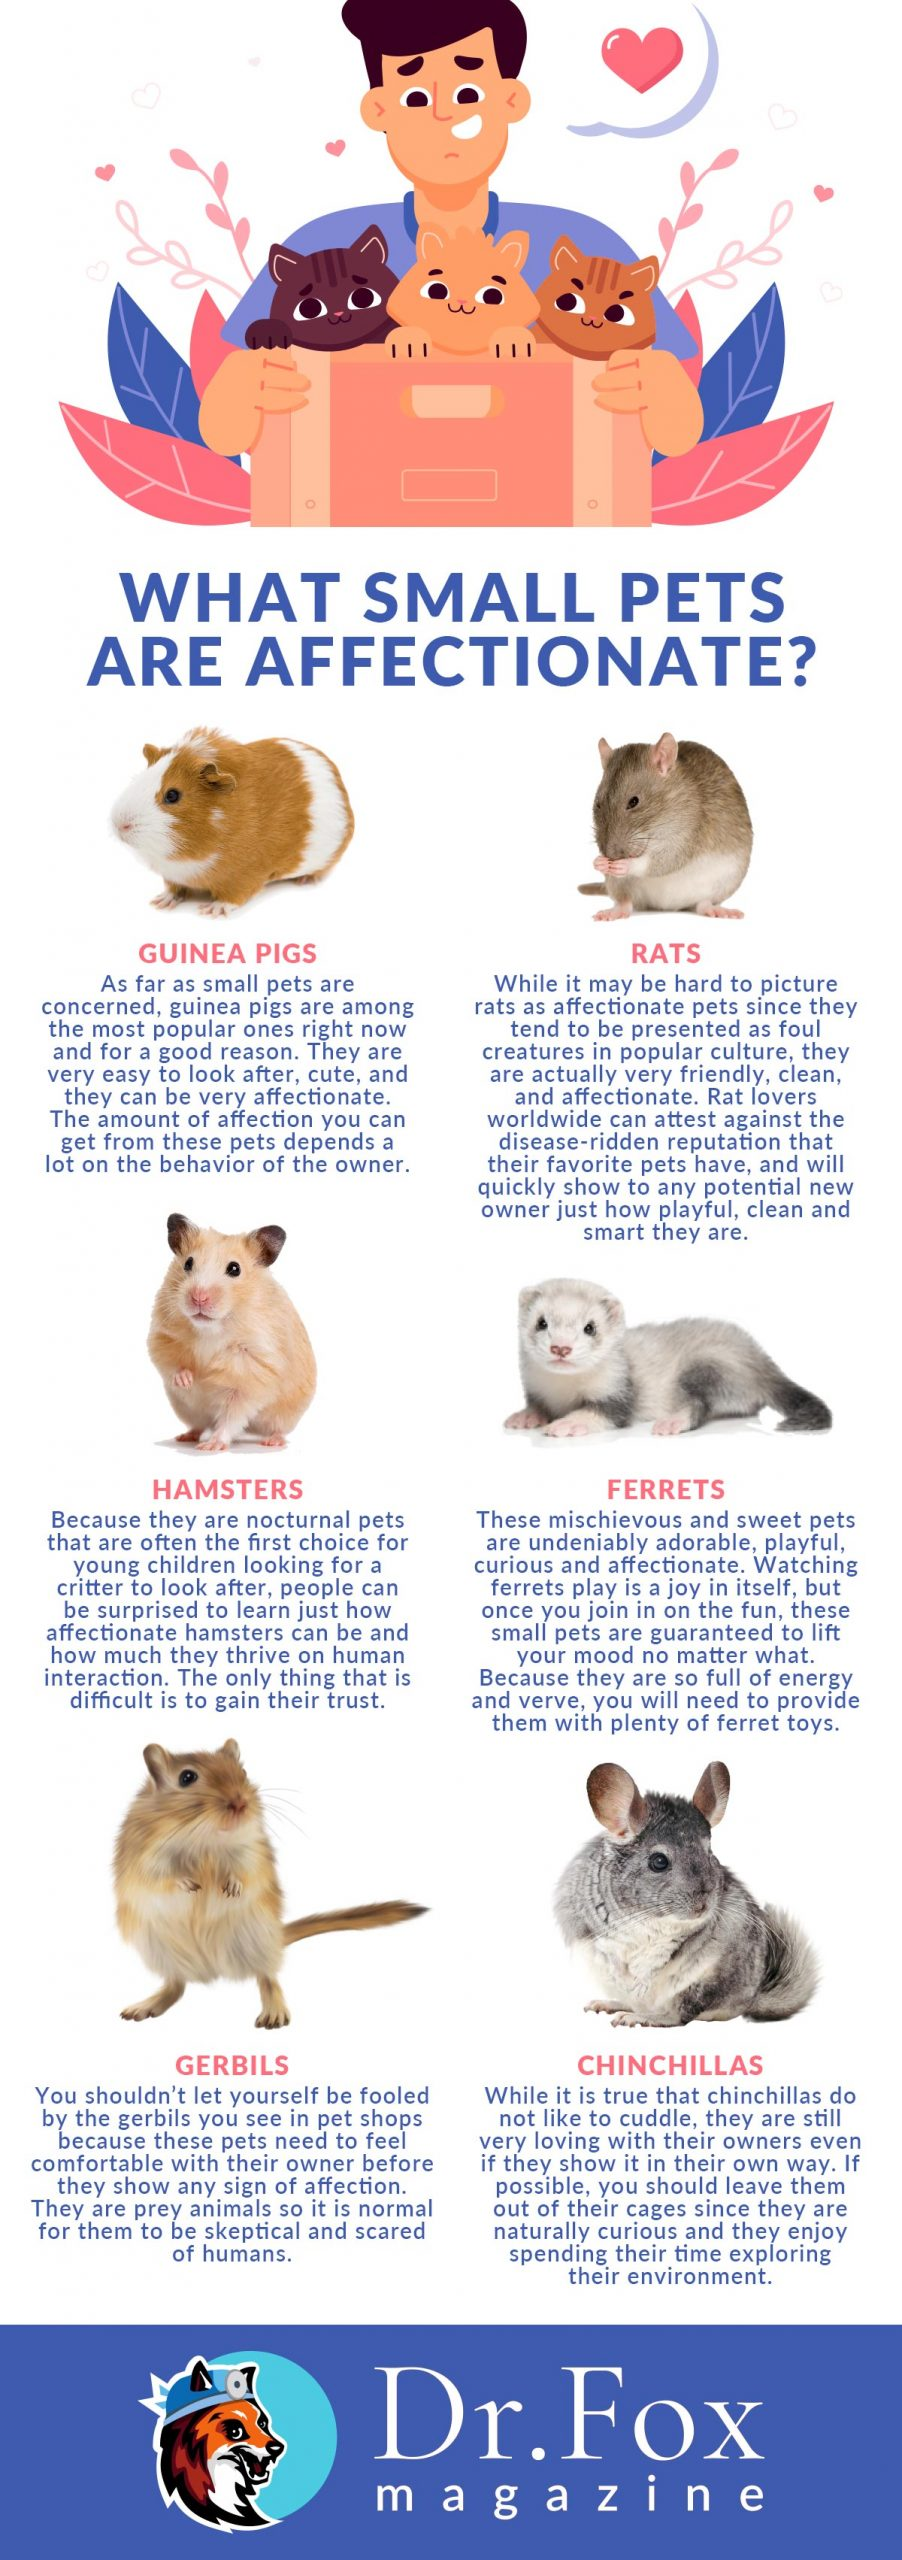 What Small Pets Are Affectionate